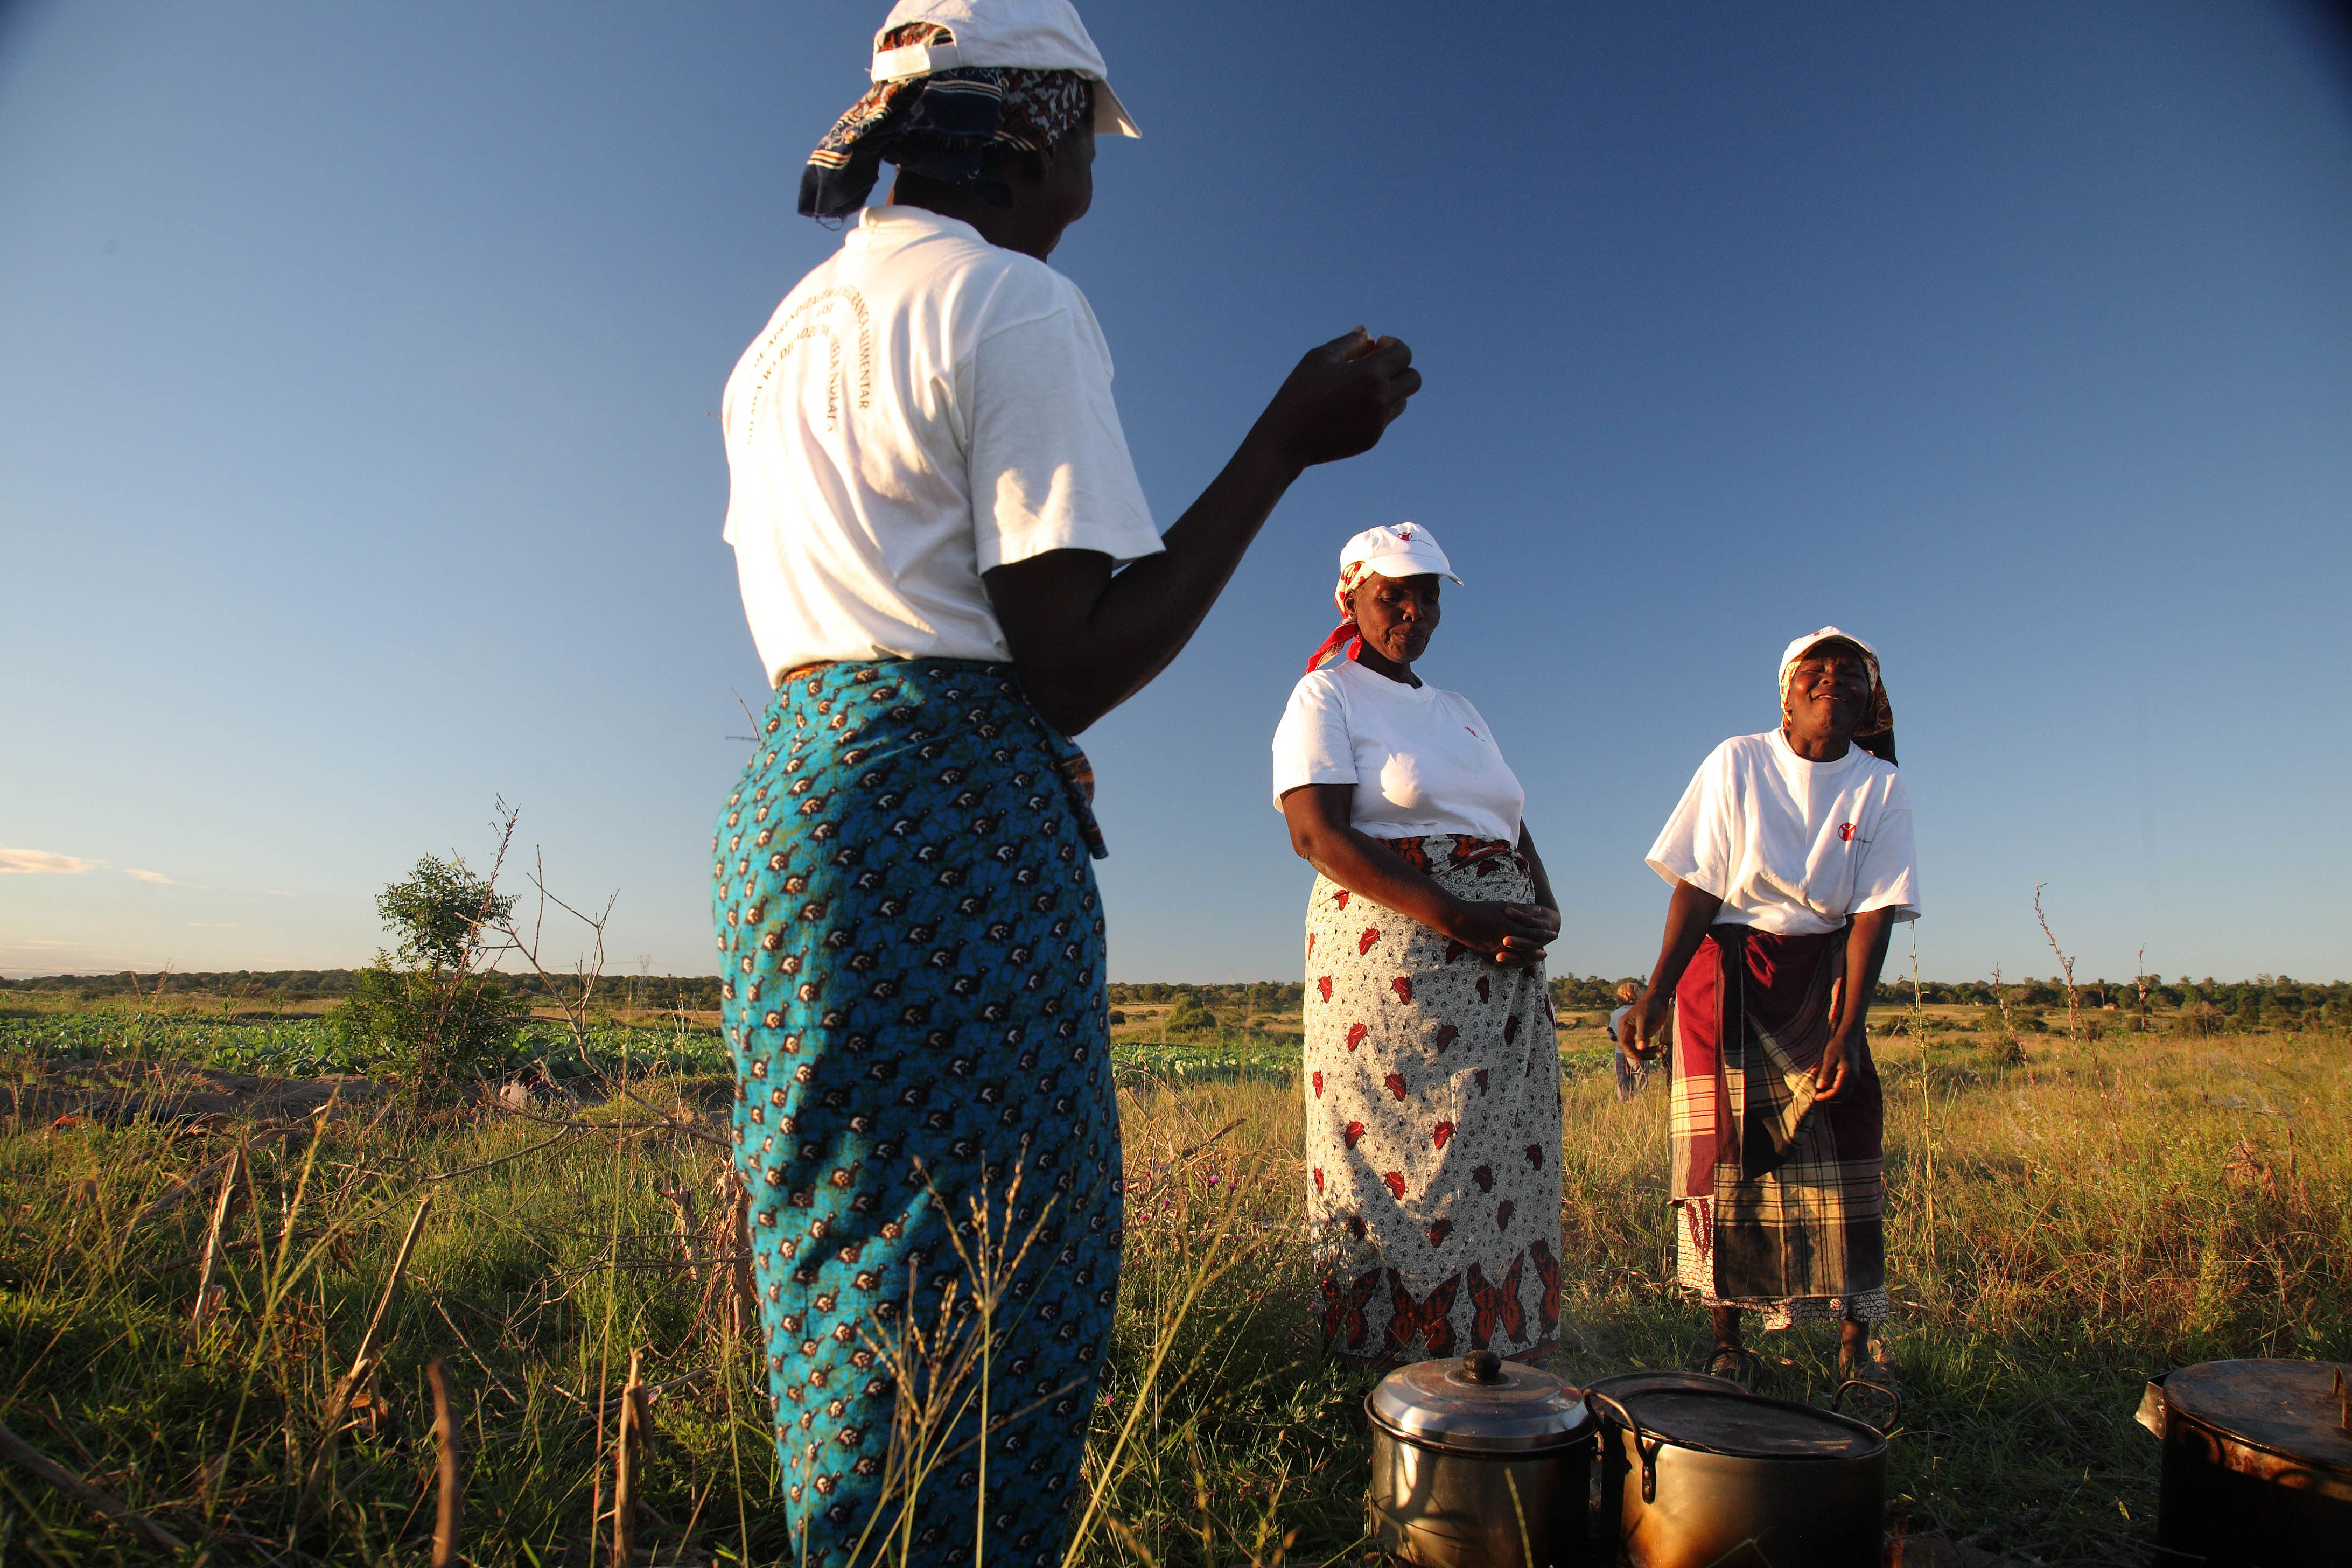 Considering the Varied Experiences of Rural Women